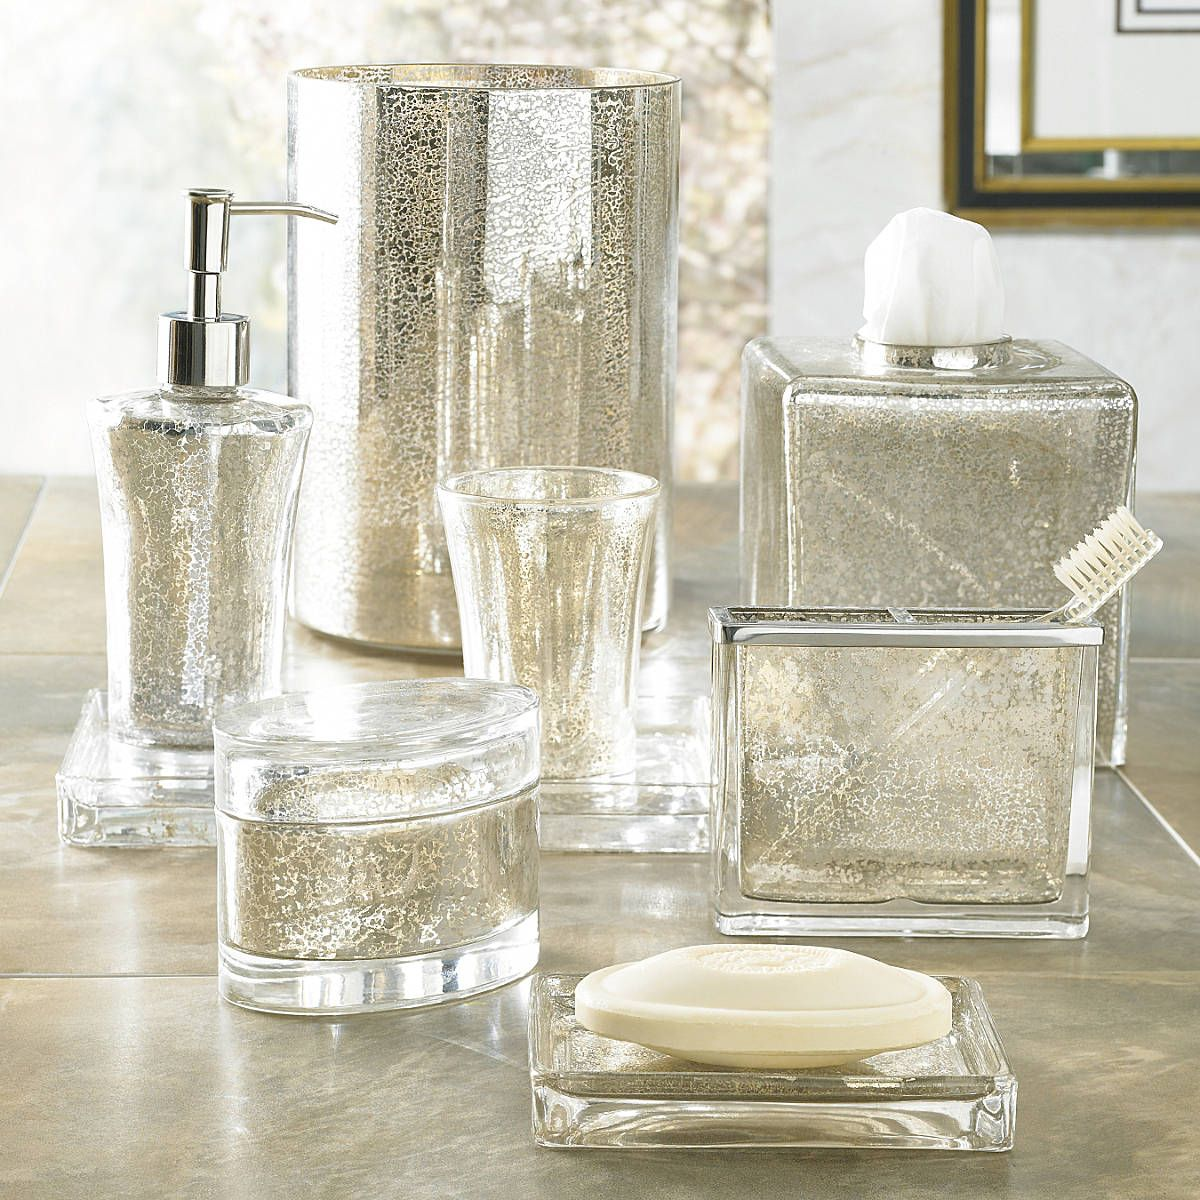 Luxury Bath Accessory Sets